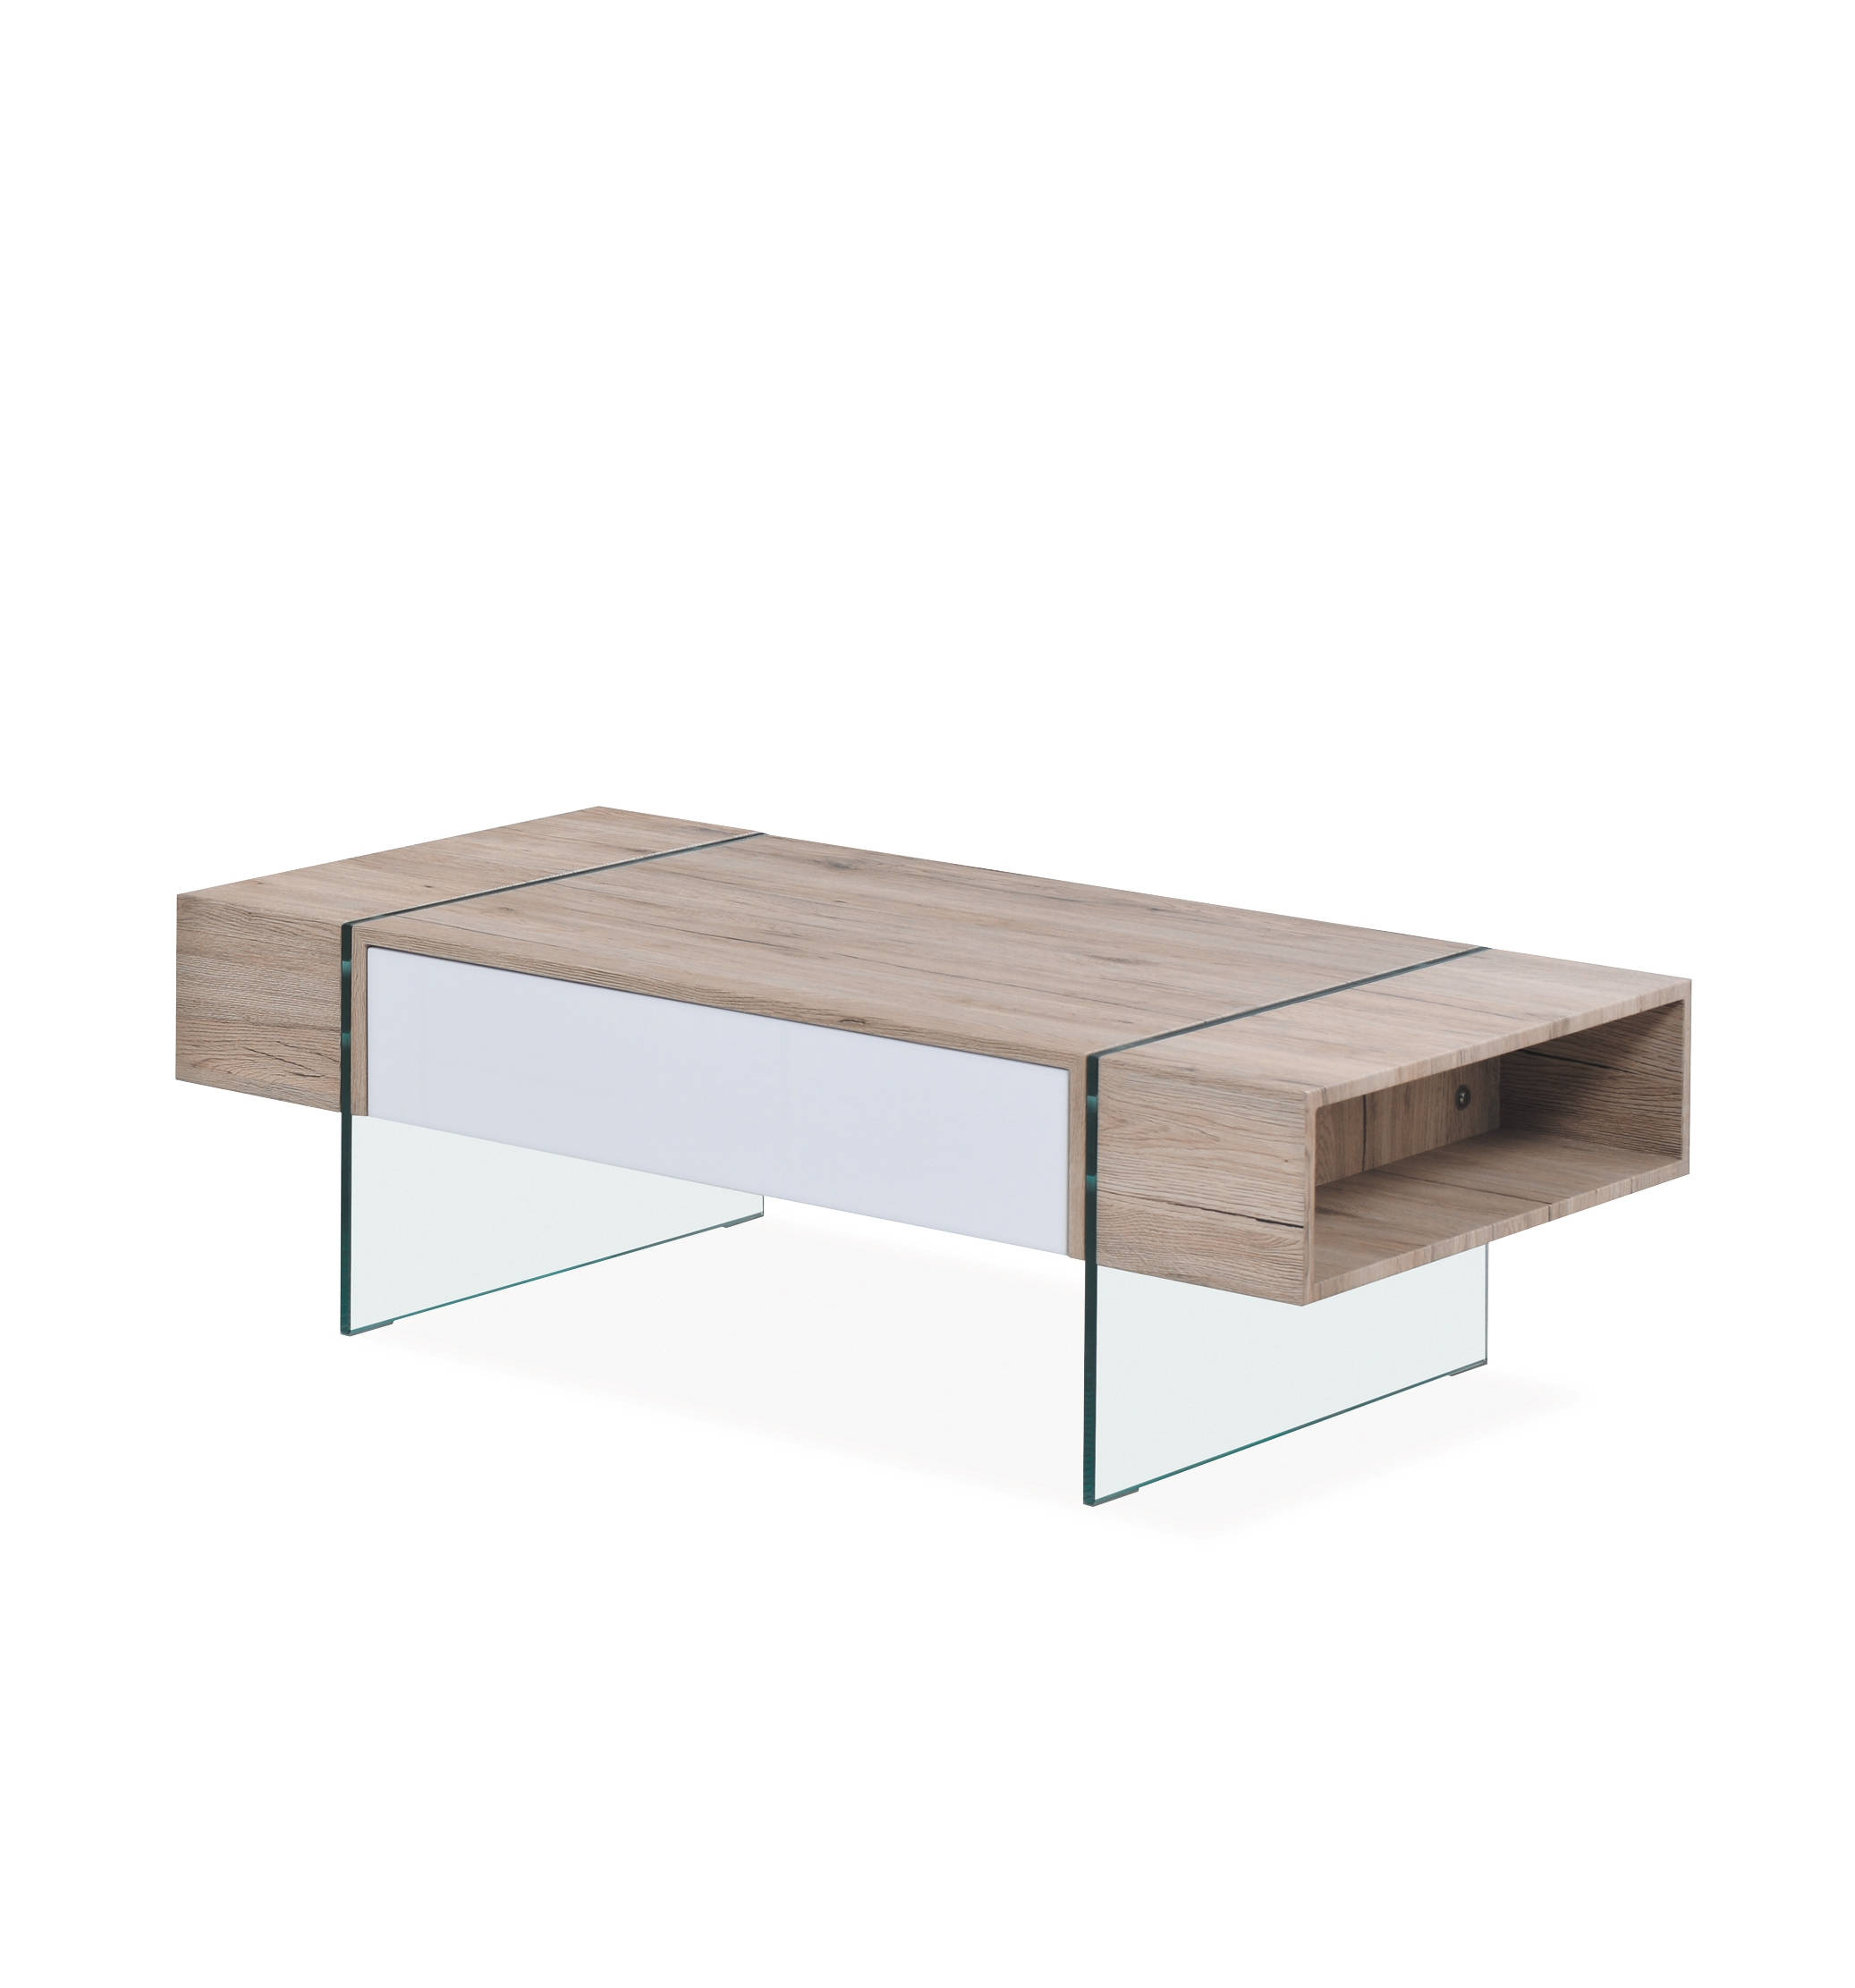 Sanremo Tempered Gl Legs Coffee Table Click To Enlarge